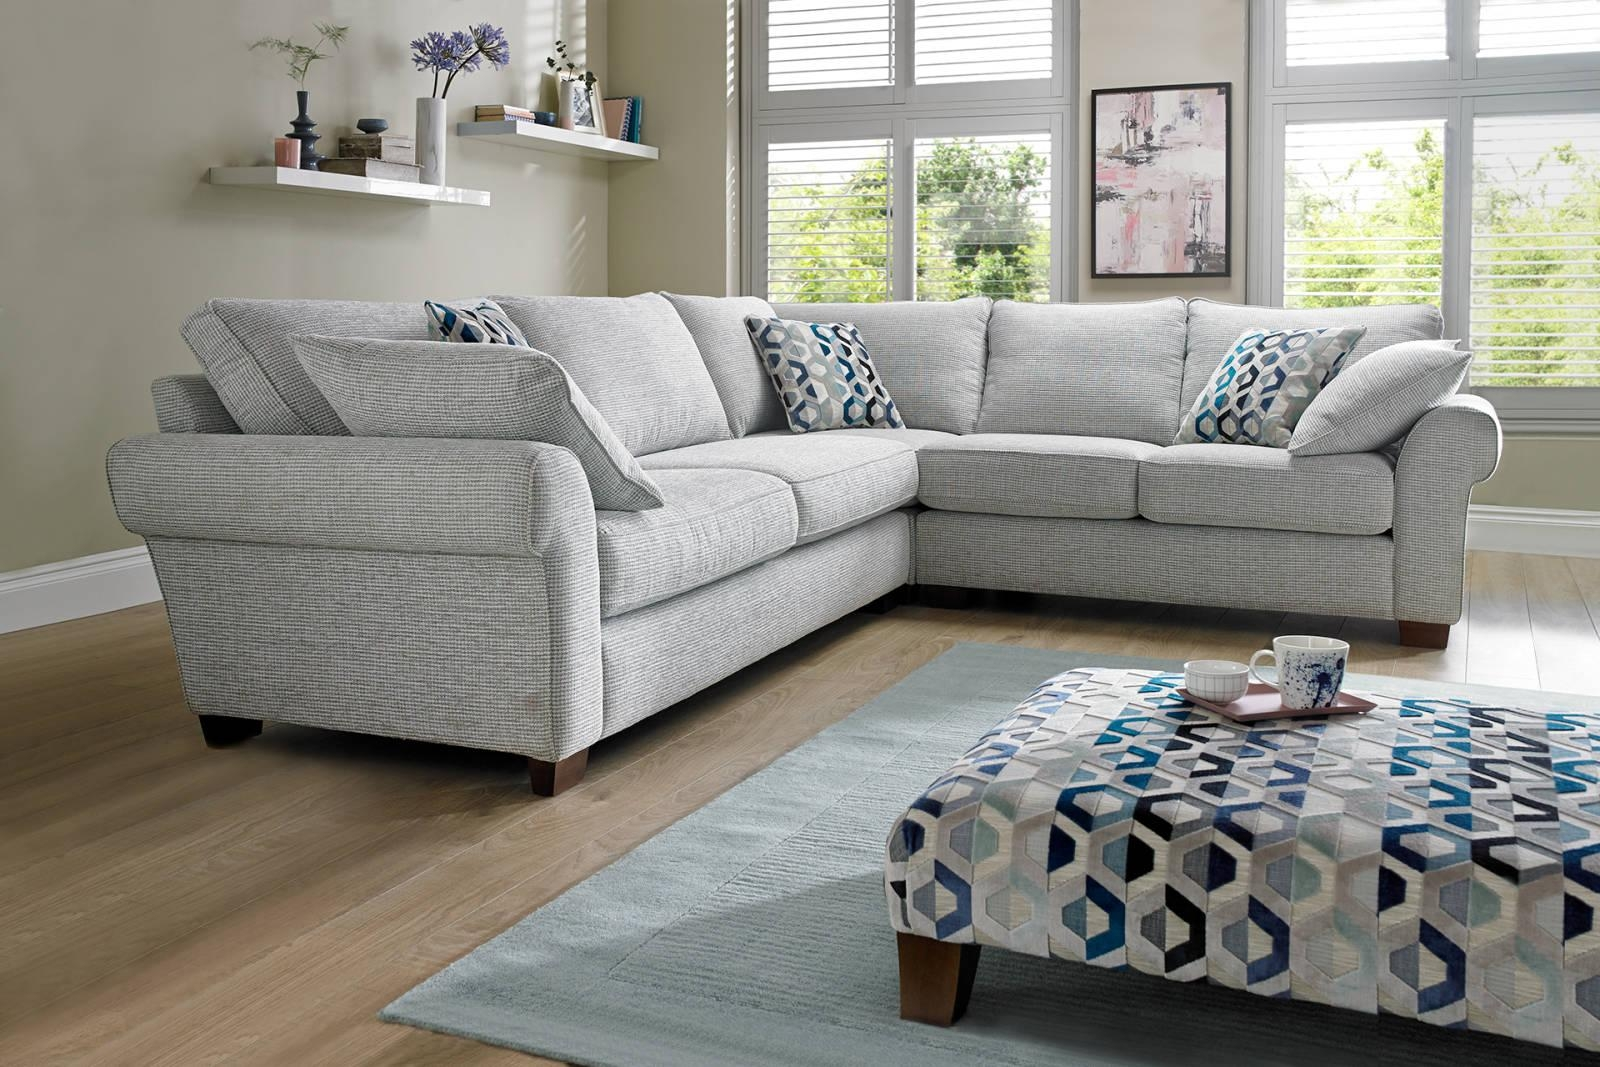 Corner Sofas In Leather, Fabric | Sofology With Regard To Leather Corner Sofas (Image 8 of 20)